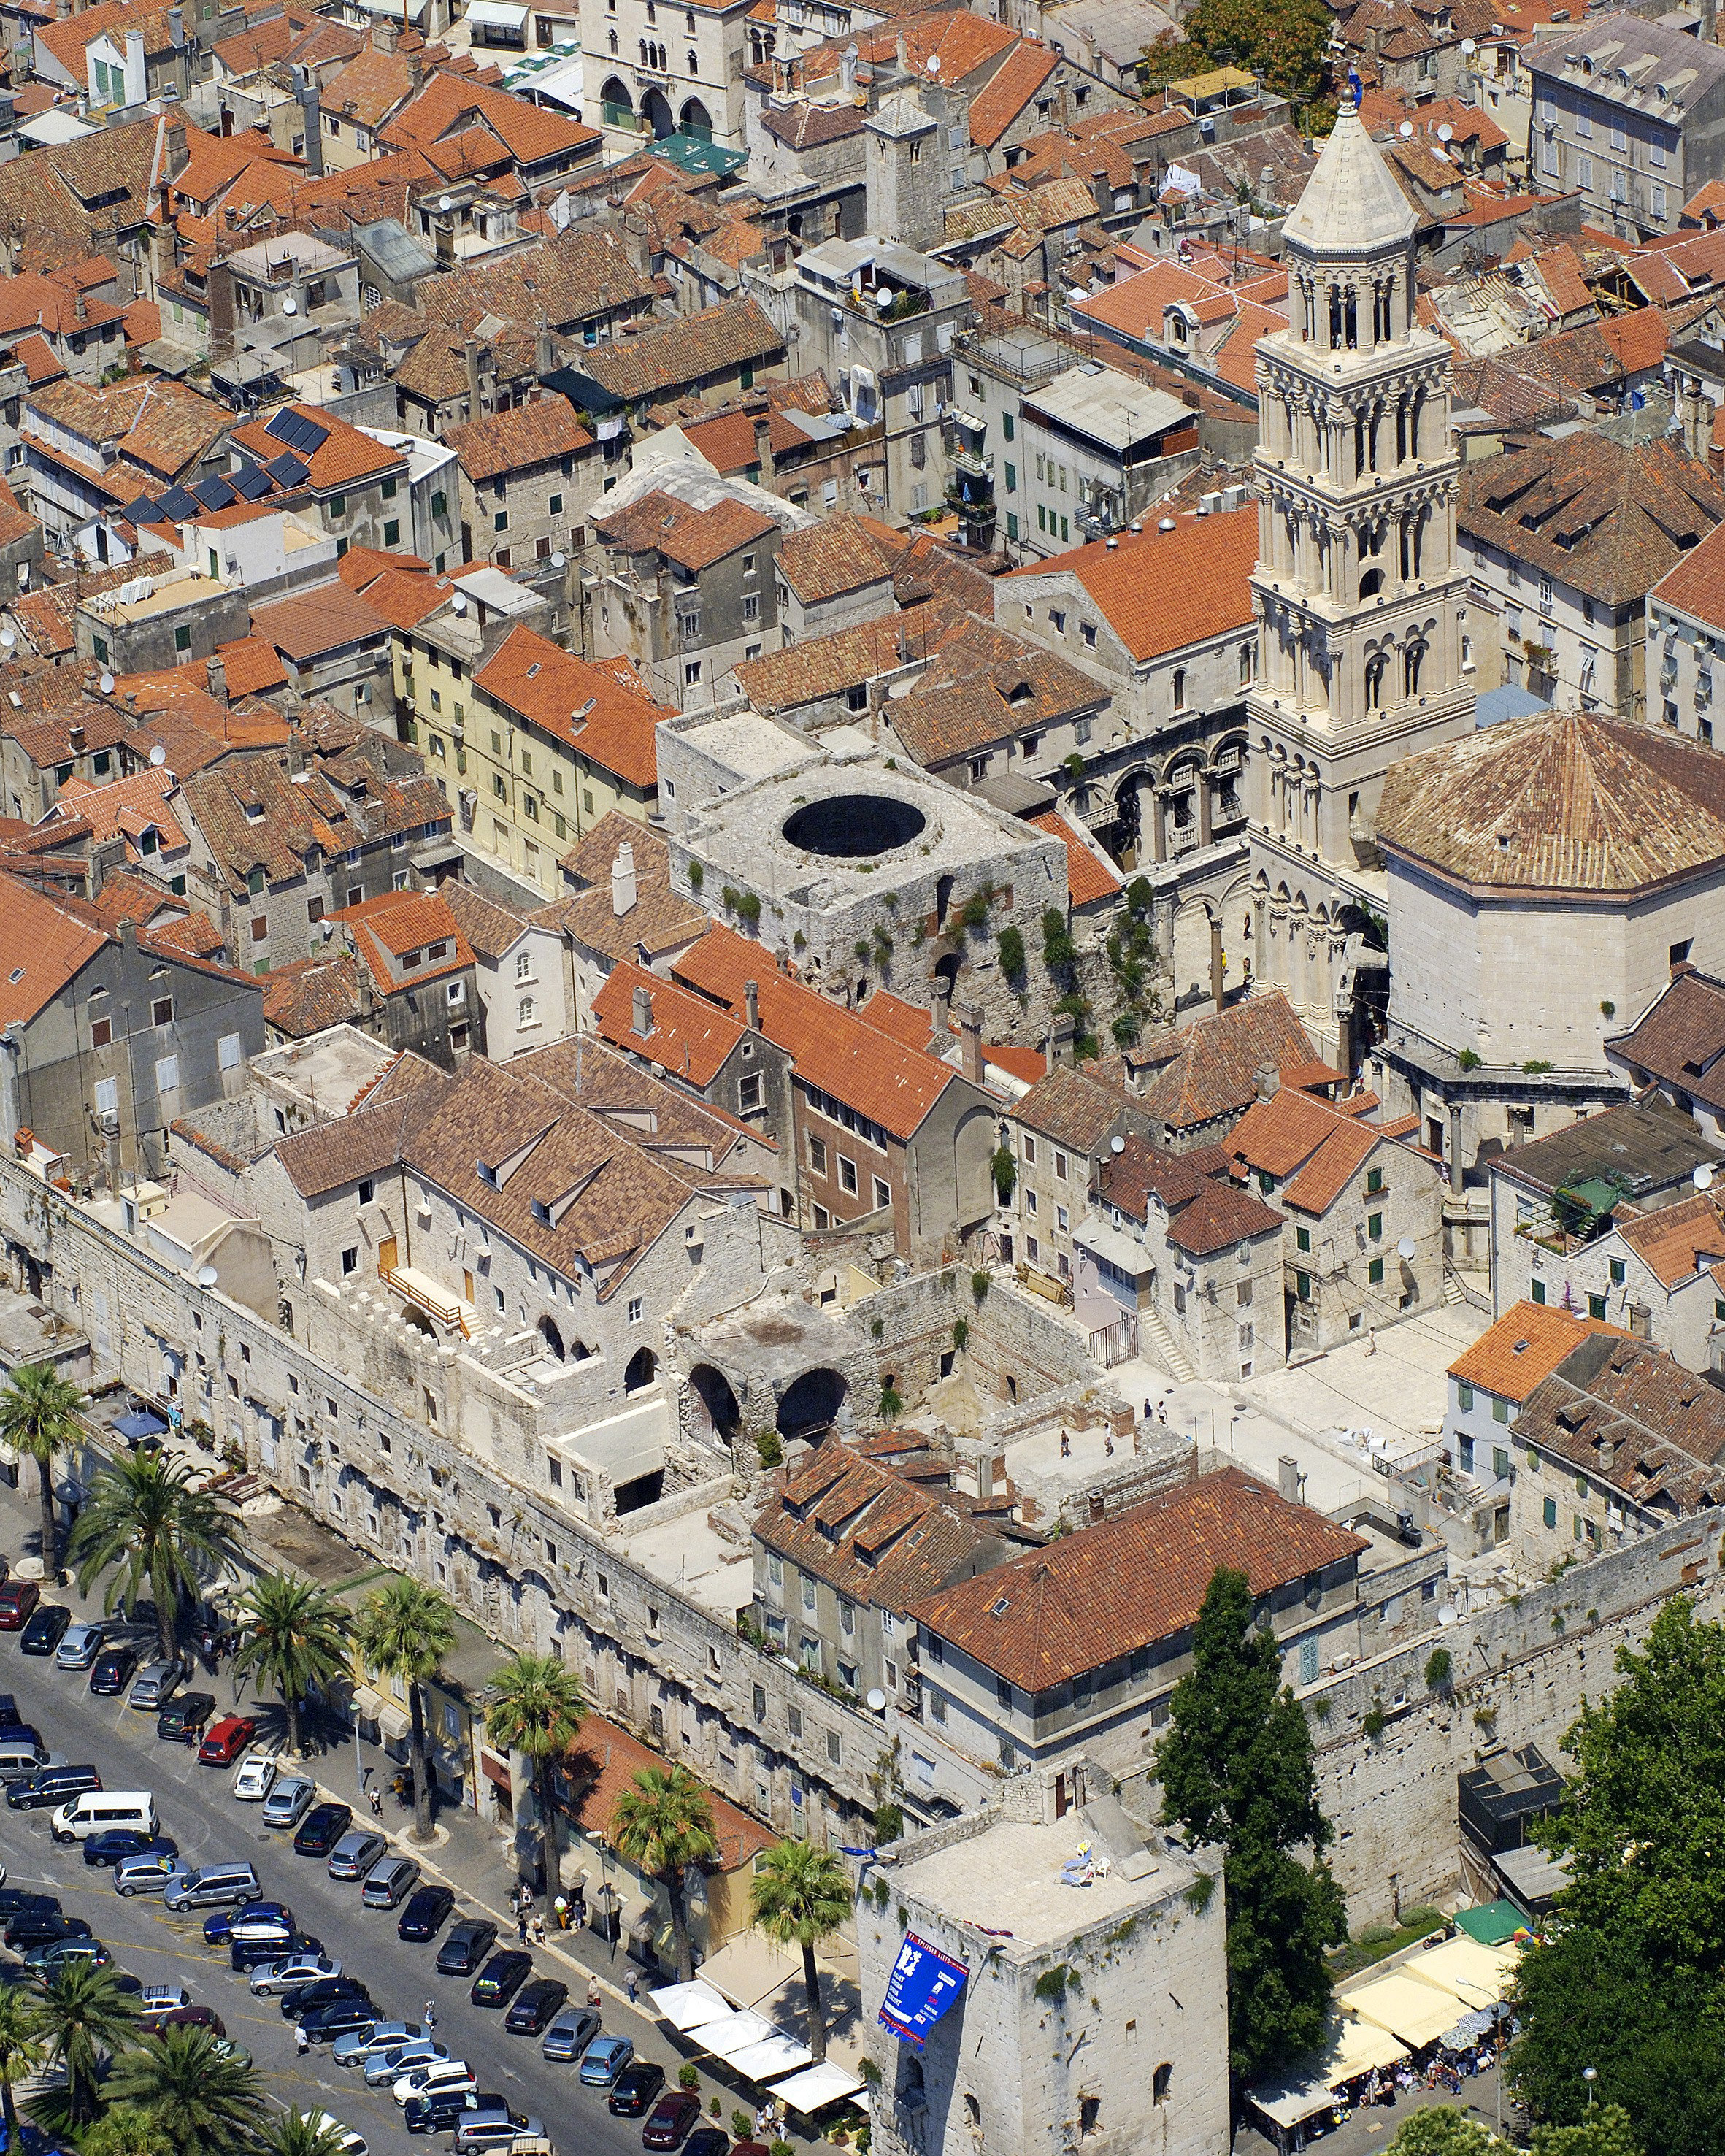 Trip Ideas aerial photography bird's eye view Town residential area neighbourhood City suburb human settlement cityscape Downtown ancient history canyon town square